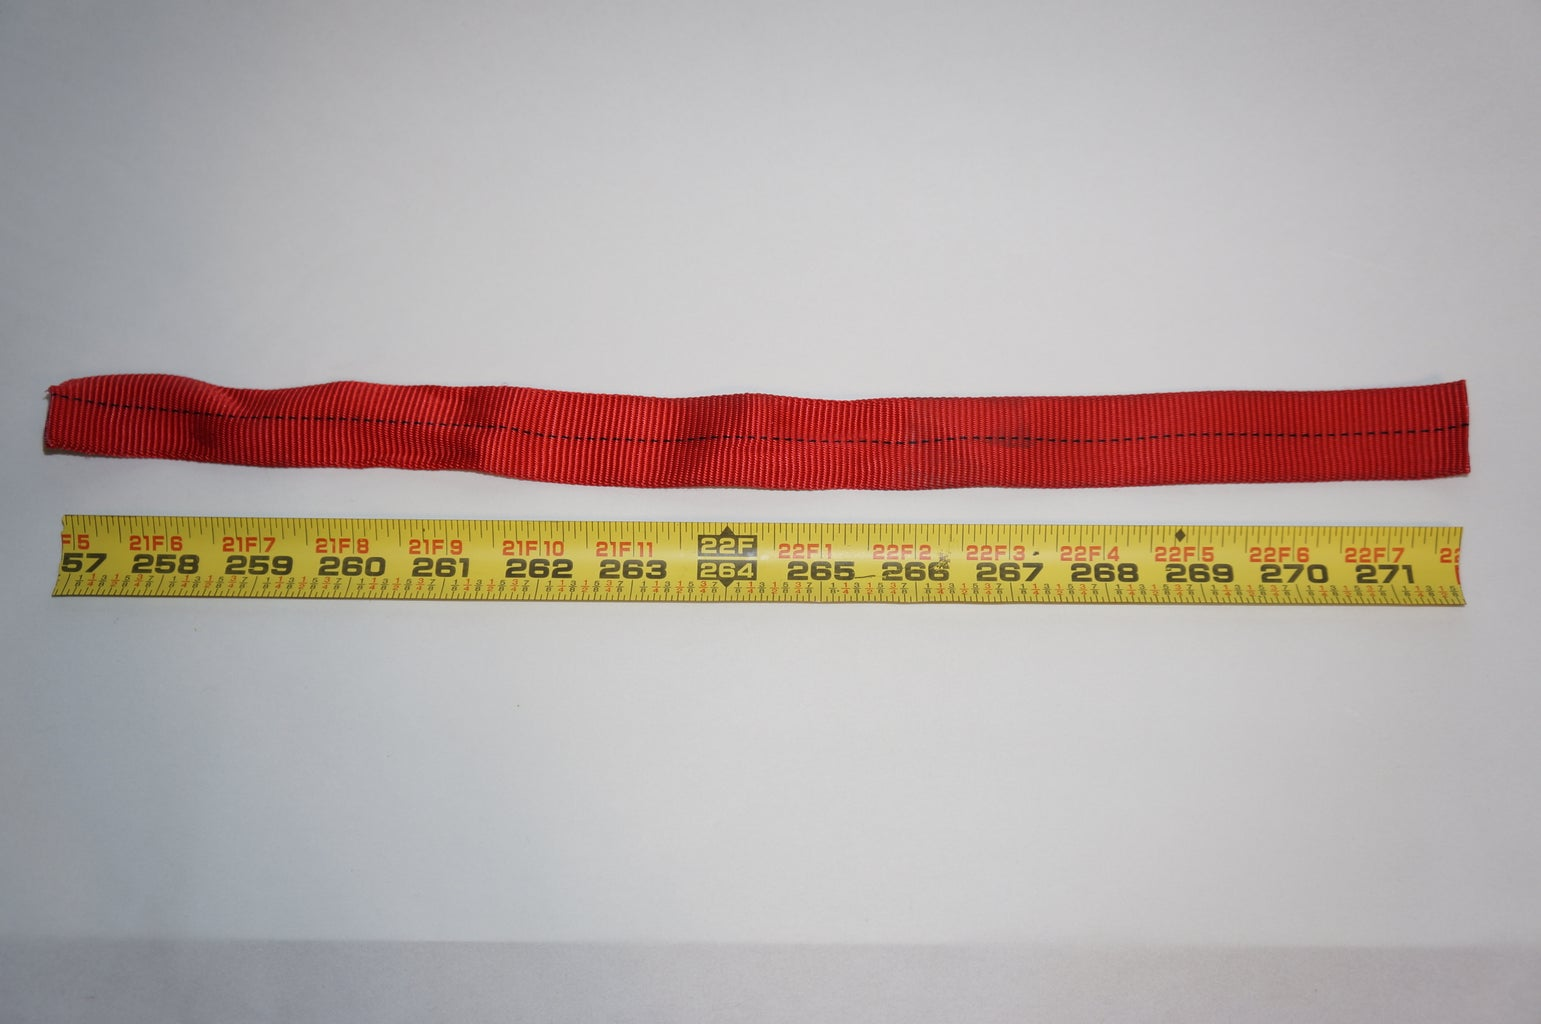 Cut the Tape Measure and Webbing